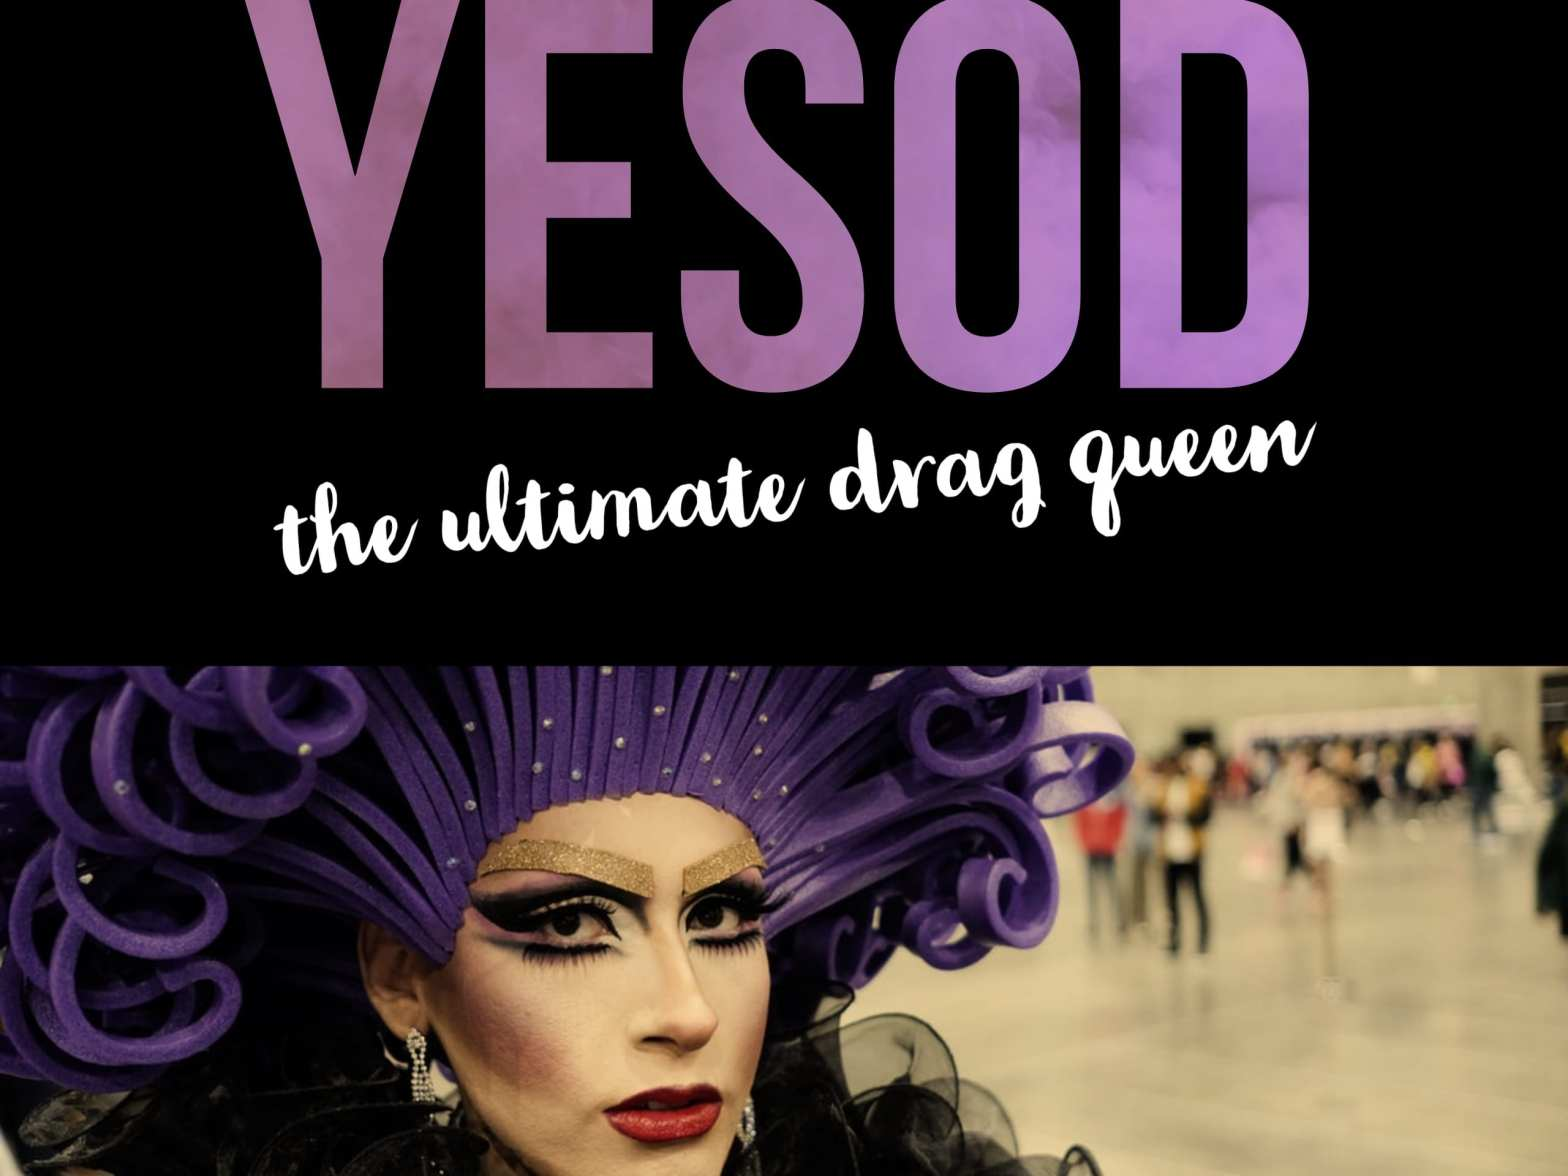 Yesod: The Ultimate Drag Queen